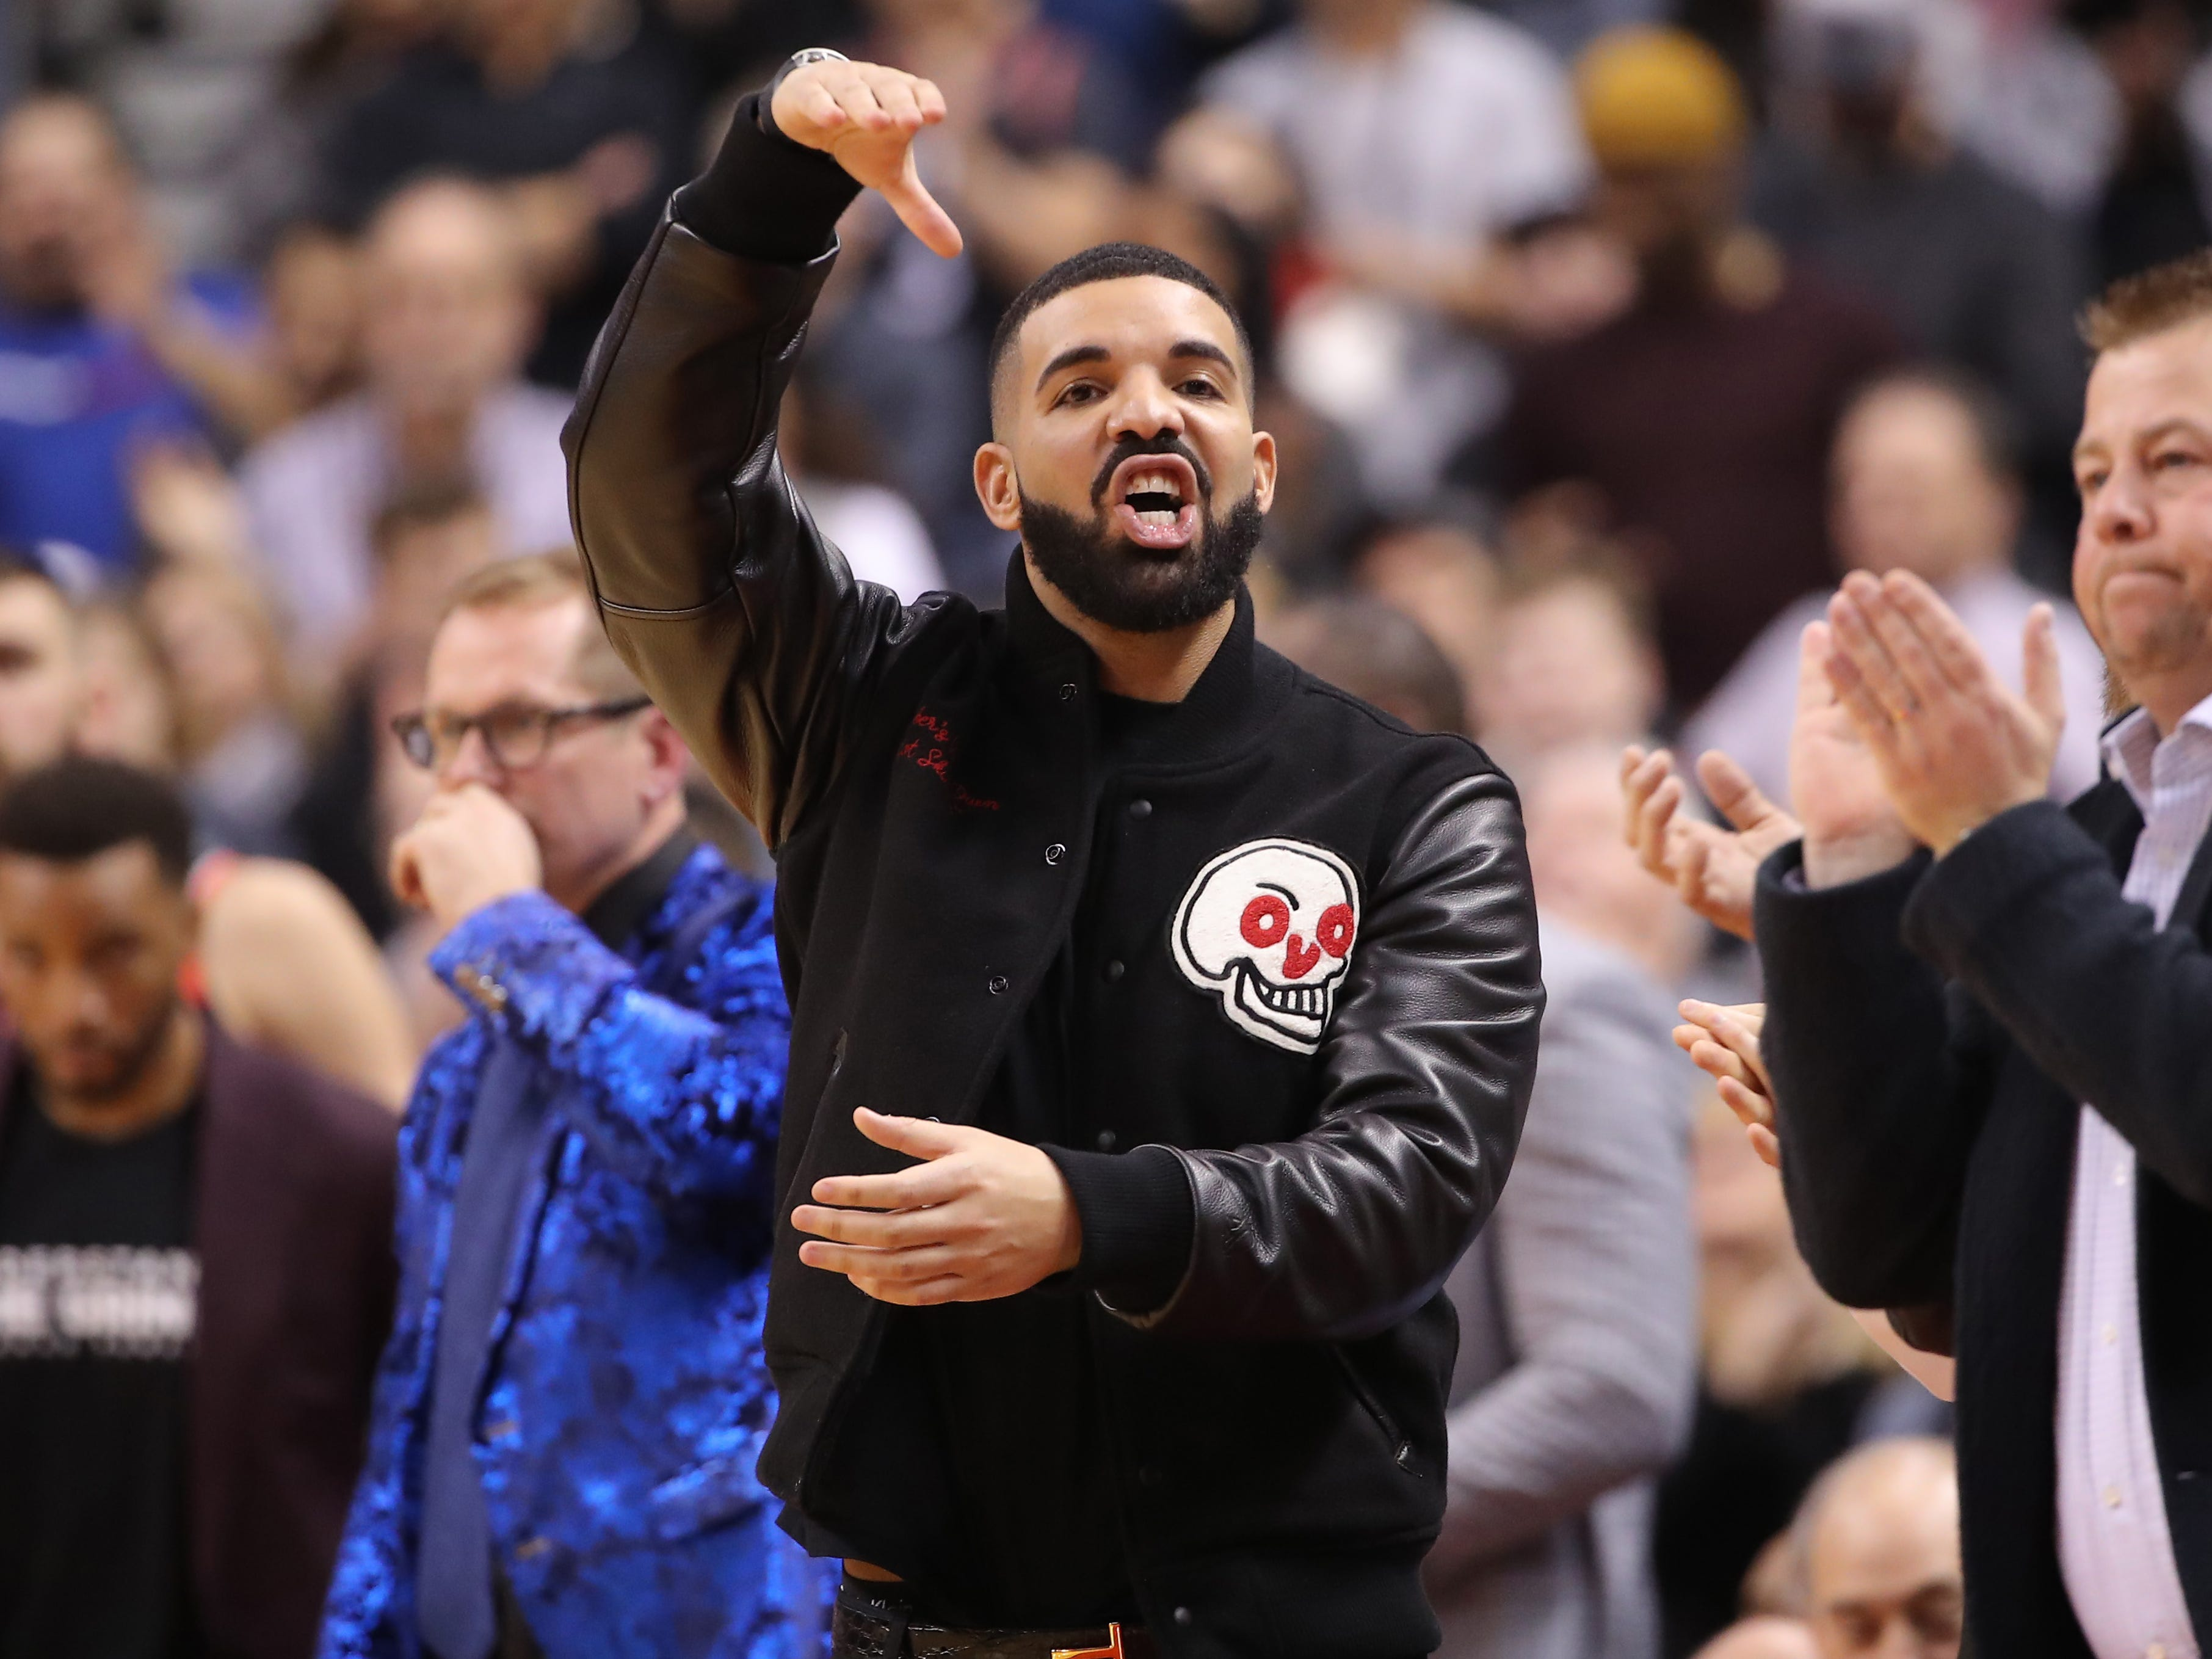 Nov. 29: Raptors superfan and team ambassador Drake takes in a game against the Warriors at Scotiabank Arena in Toronto.